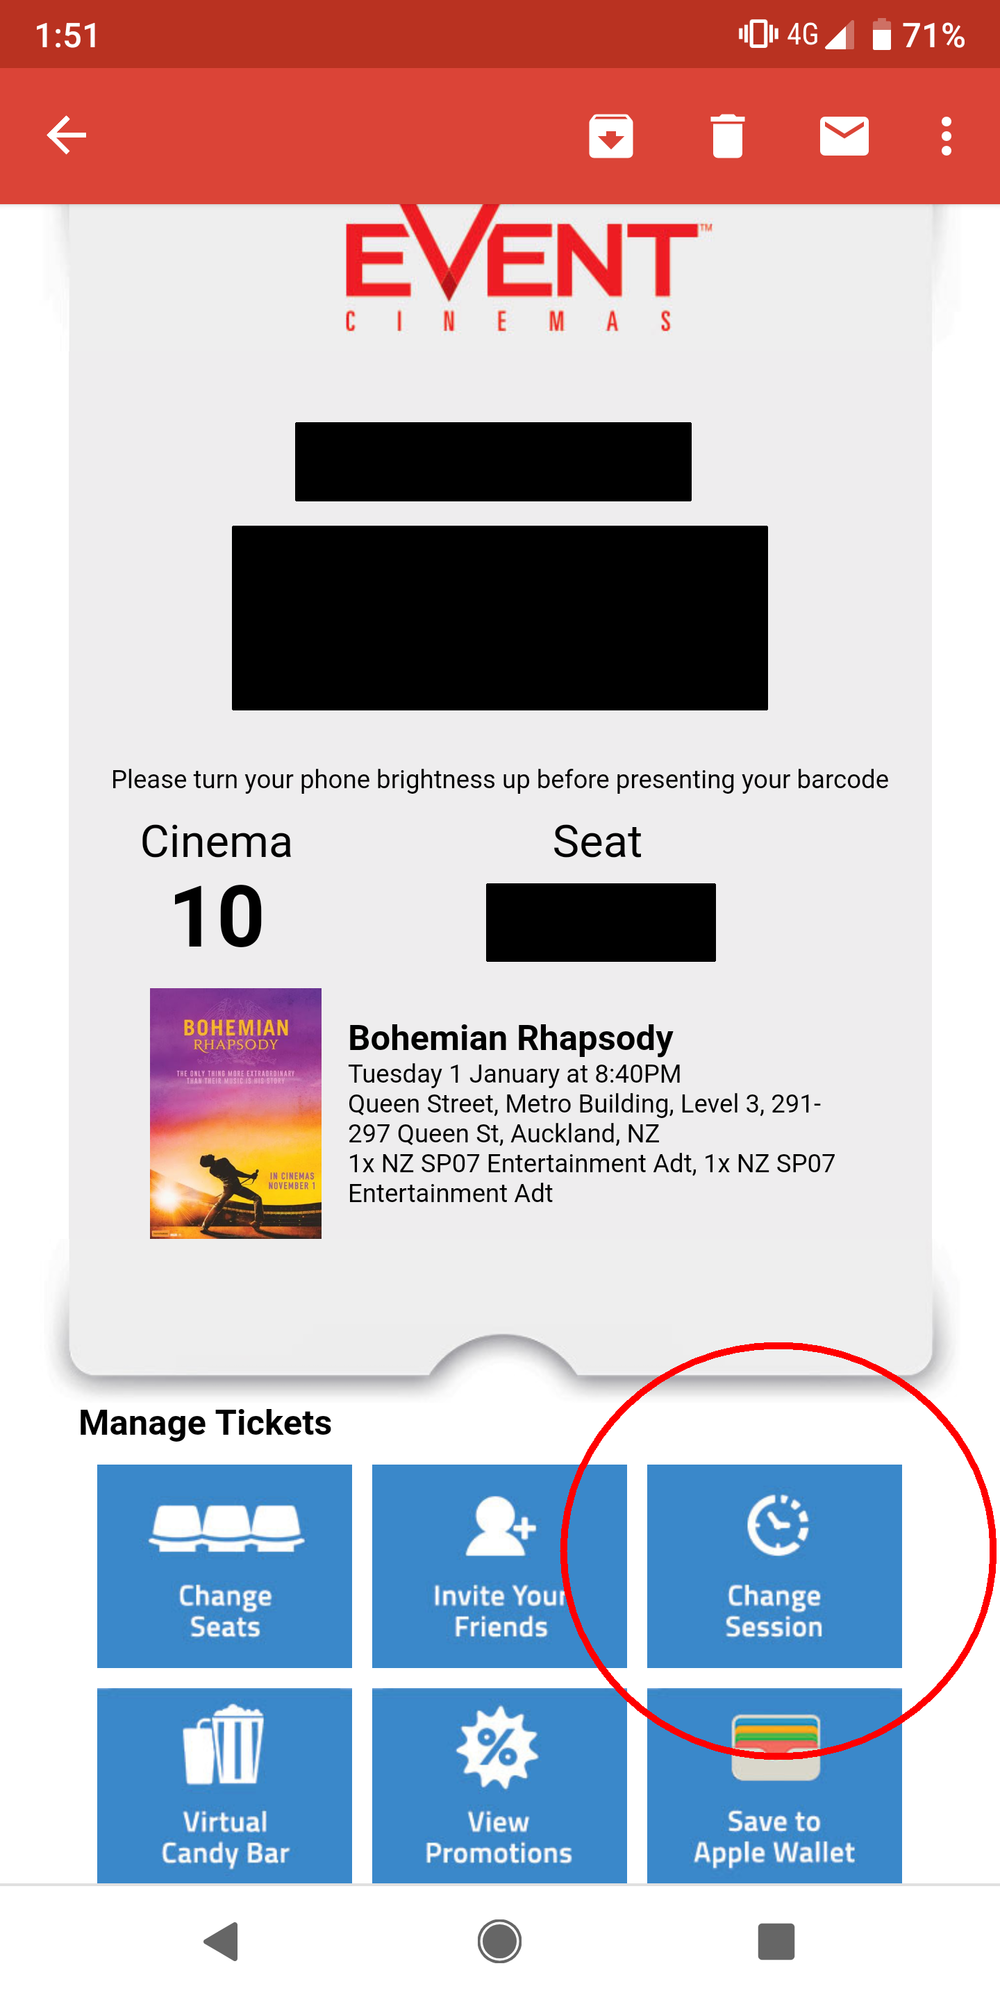 Event Cinemas booking confirmation email with the Change Session button highlighted